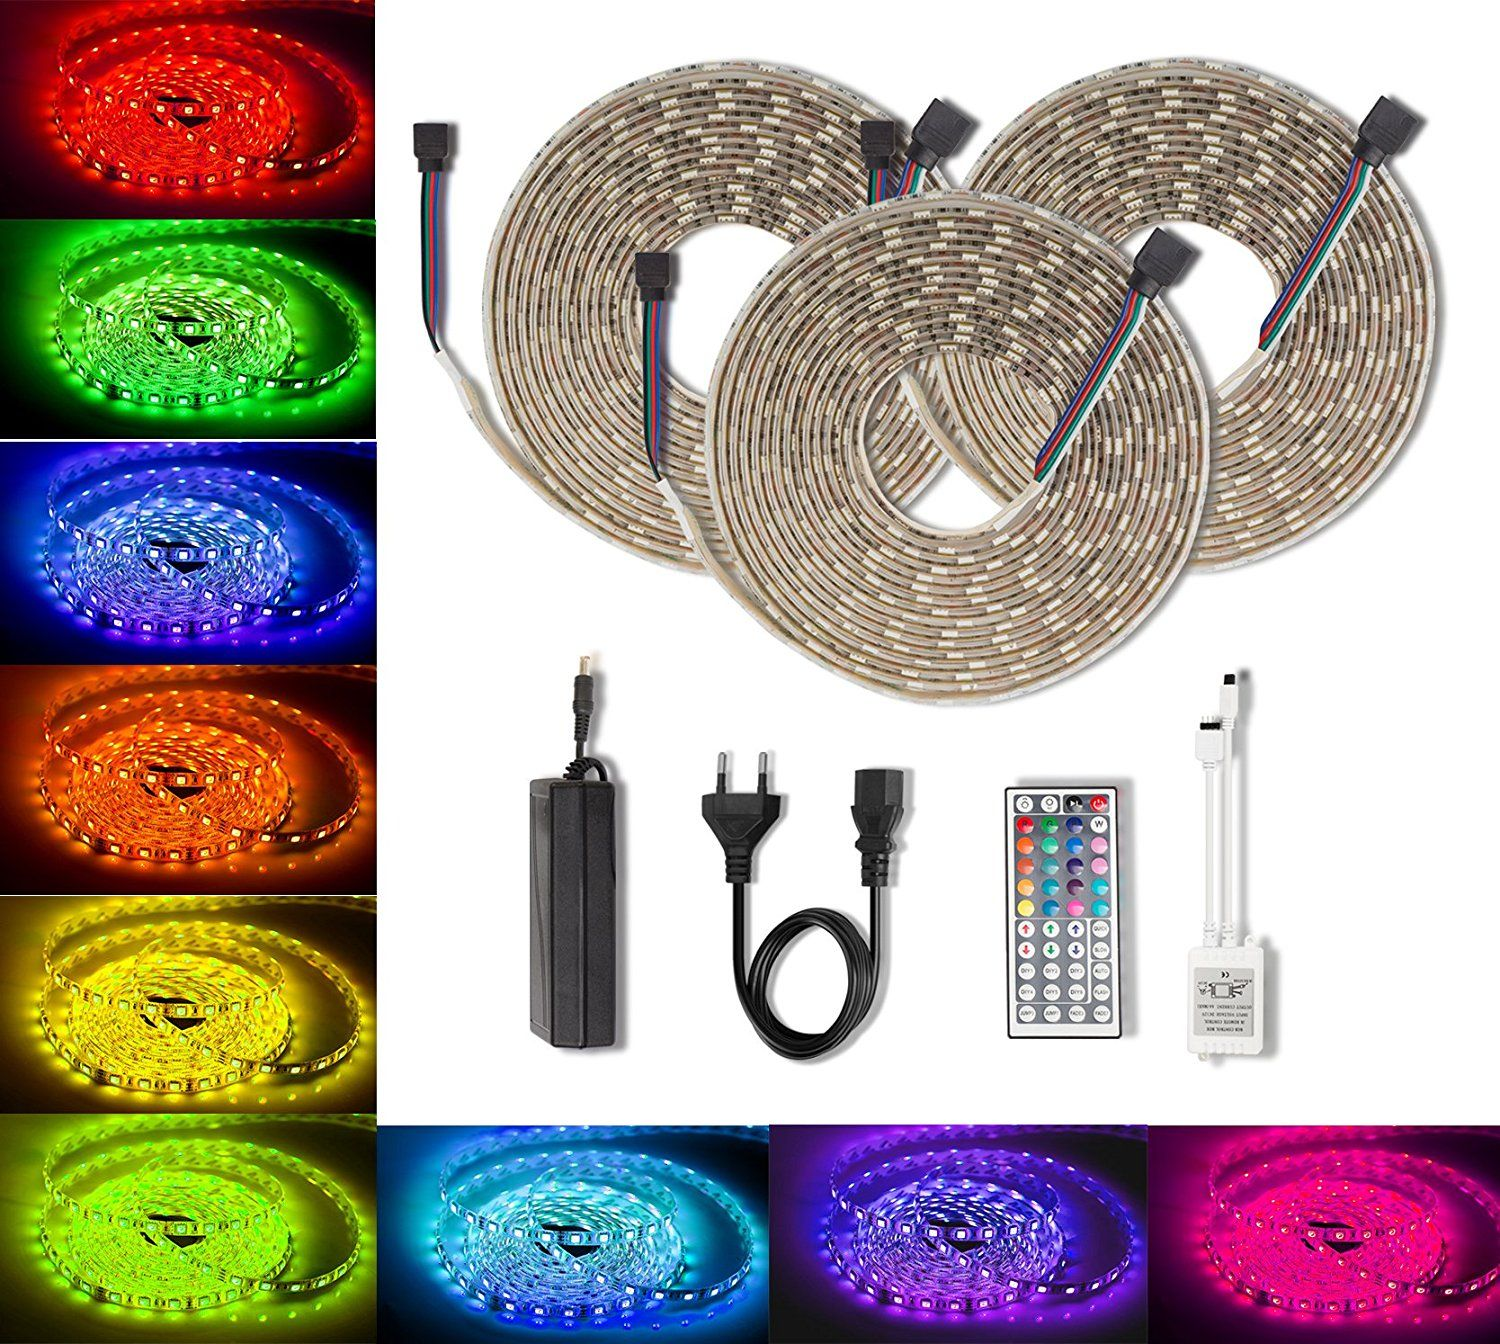 Color Changing Rope Lights Stunning Quntis Led Strips Light Rgb High Density Dimmable 164Ft 5M Rgb Smd Design Inspiration